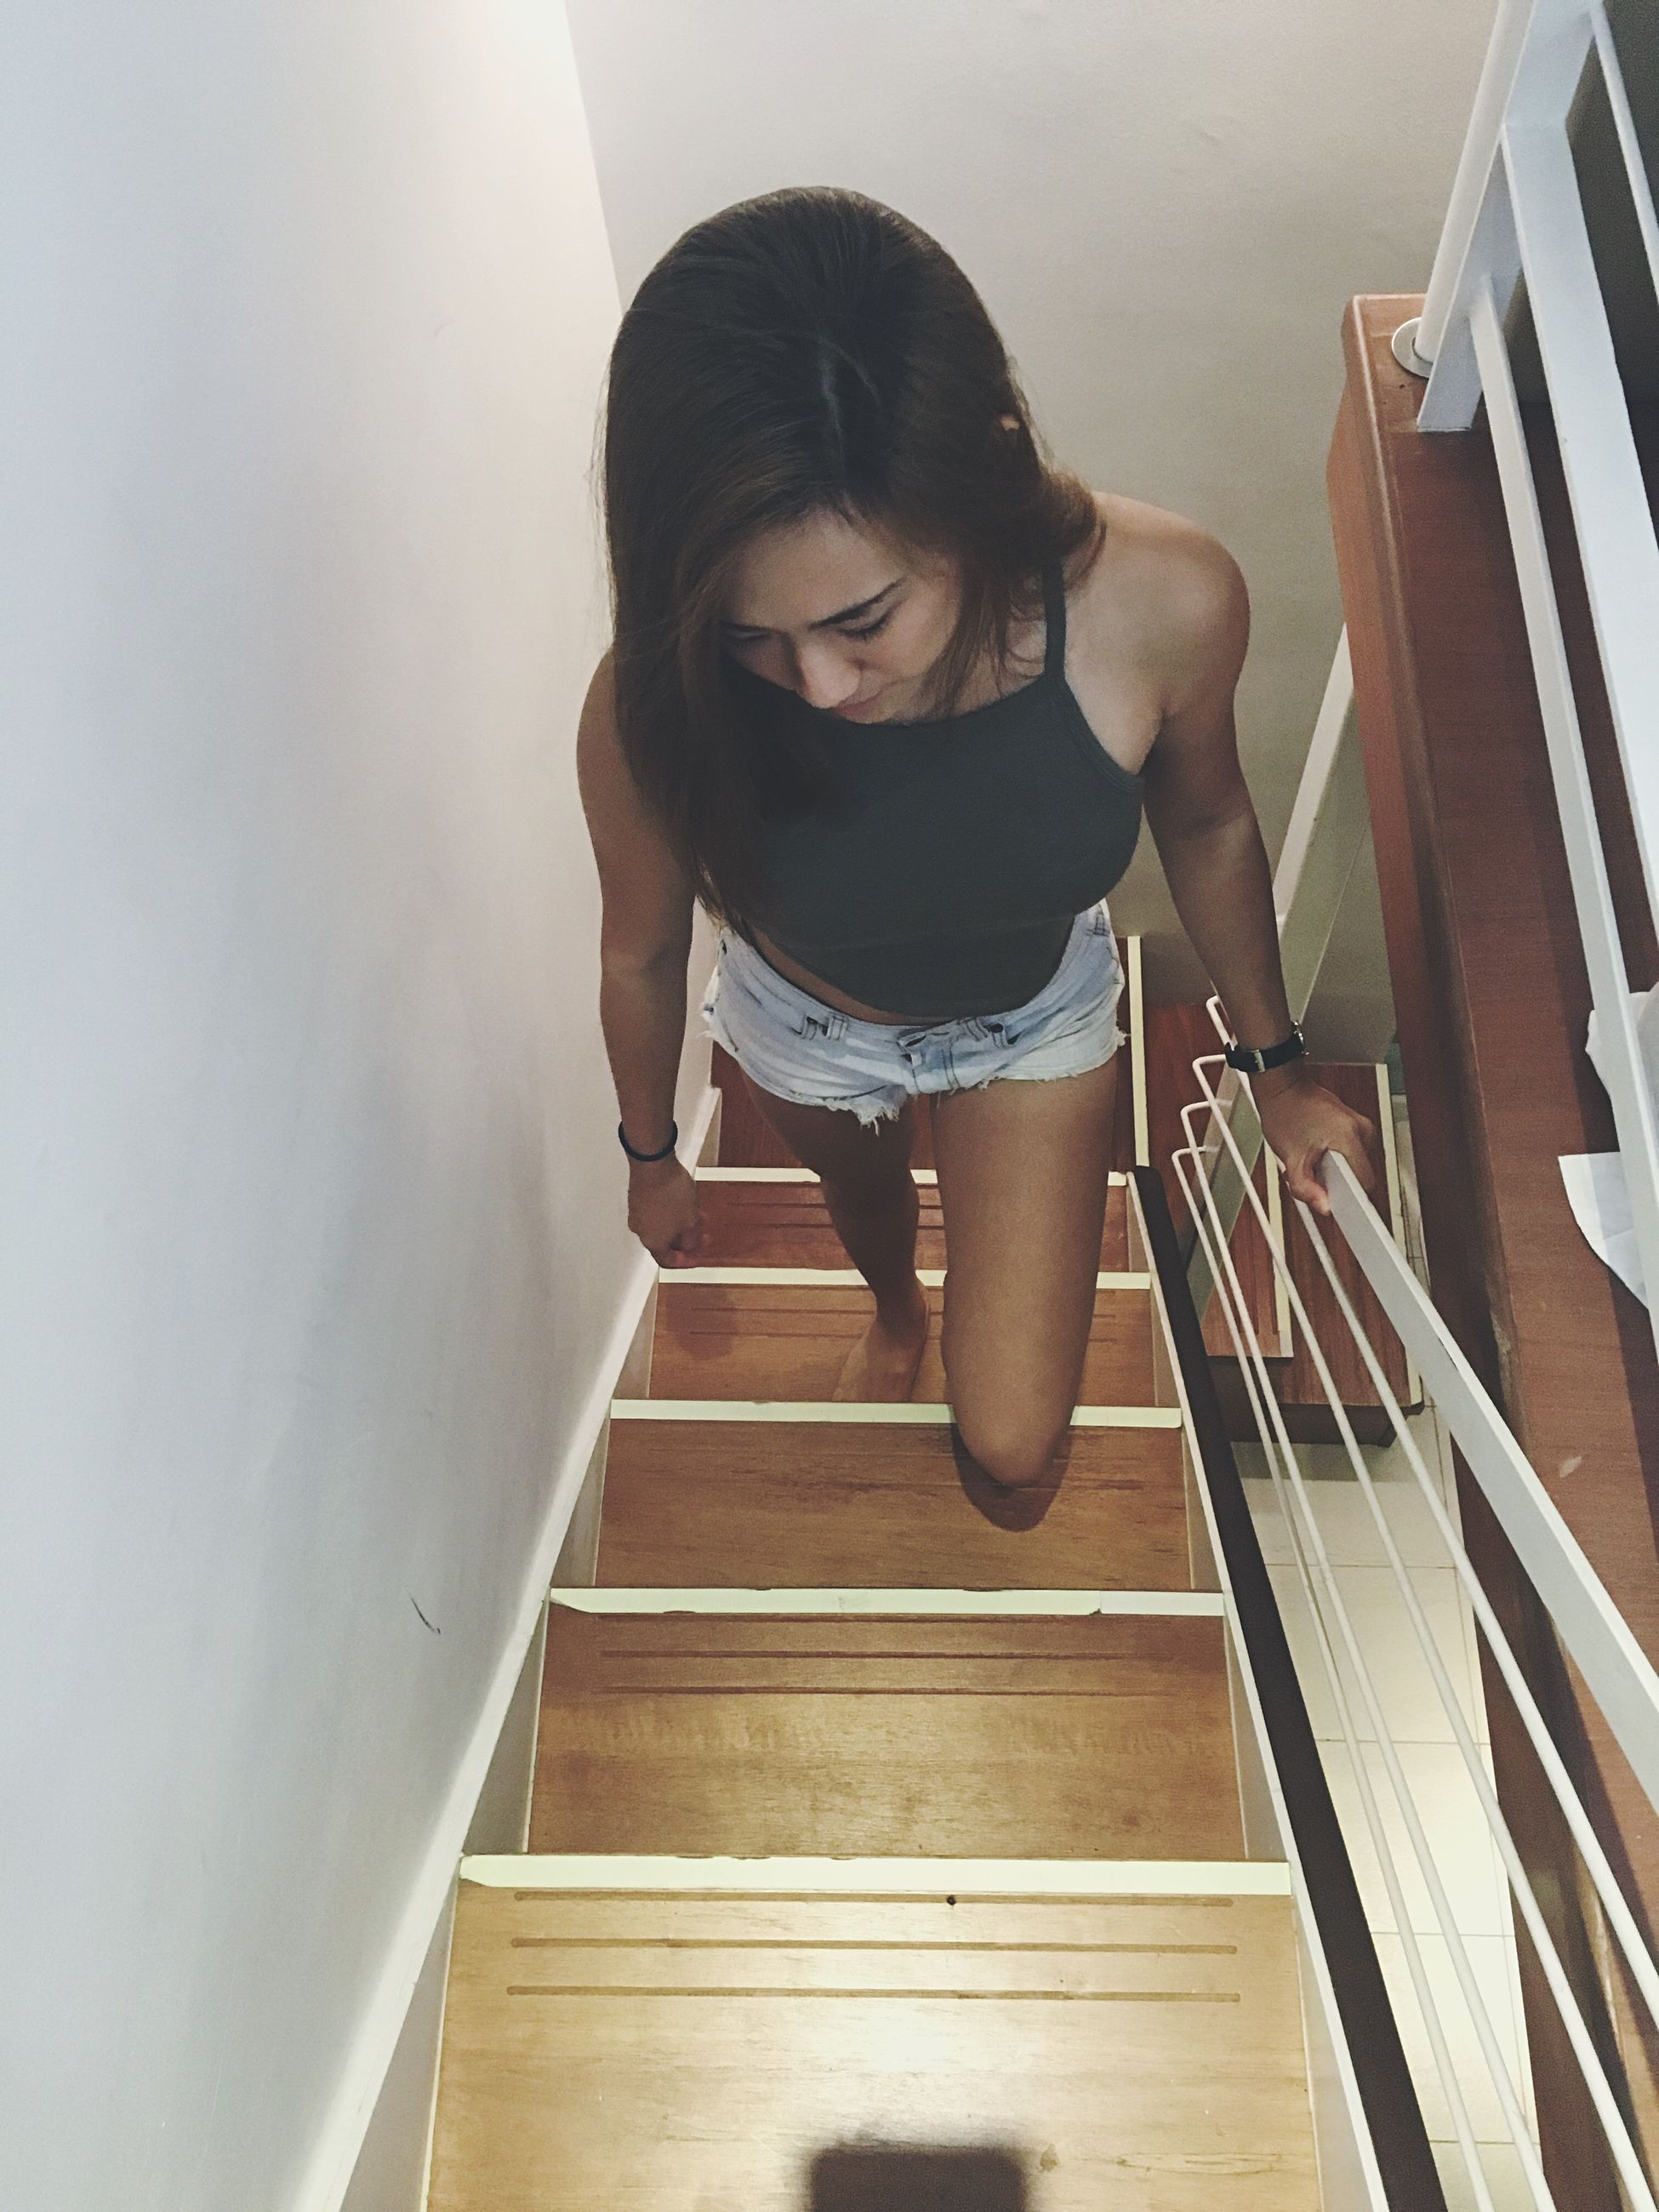 young adult, lifestyles, architecture, built structure, low angle view, indoors, steps, casual clothing, person, standing, leisure activity, staircase, front view, steps and staircases, railing, young women, wall - building feature, building exterior